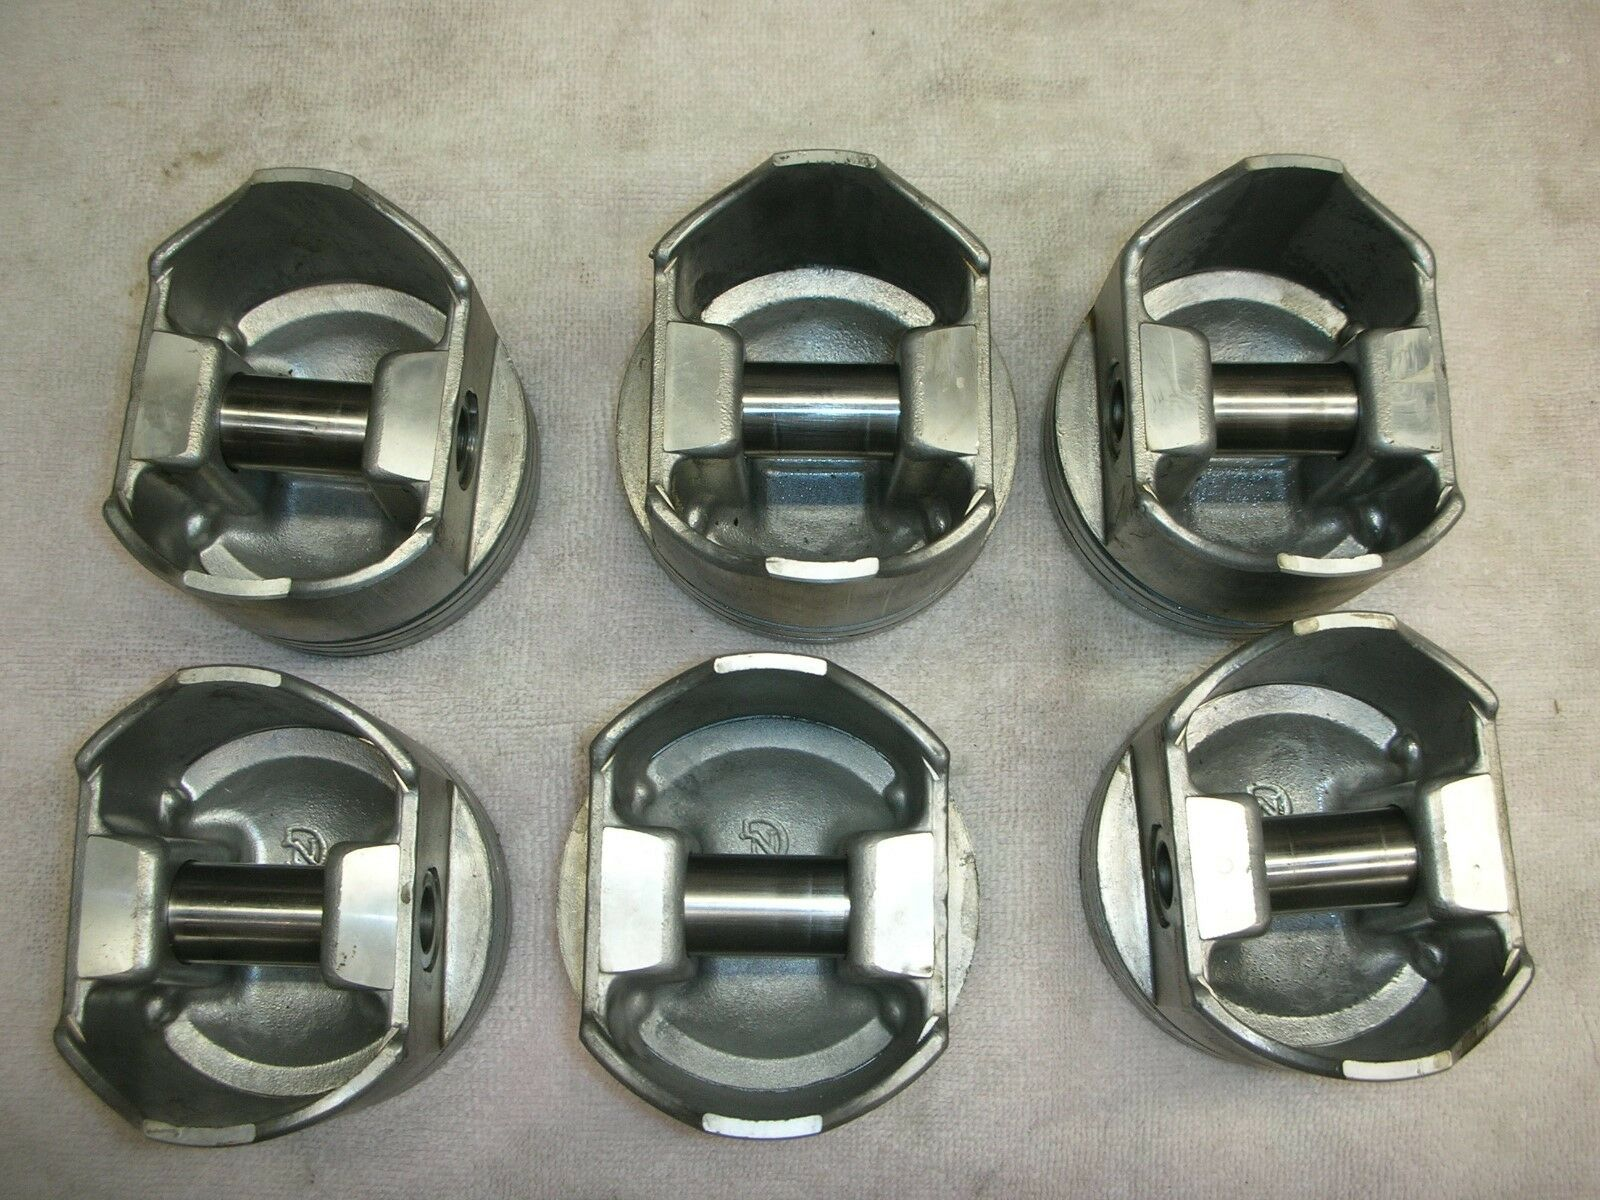 Corvair .060 FORGED PISTONS less than an hour running on them